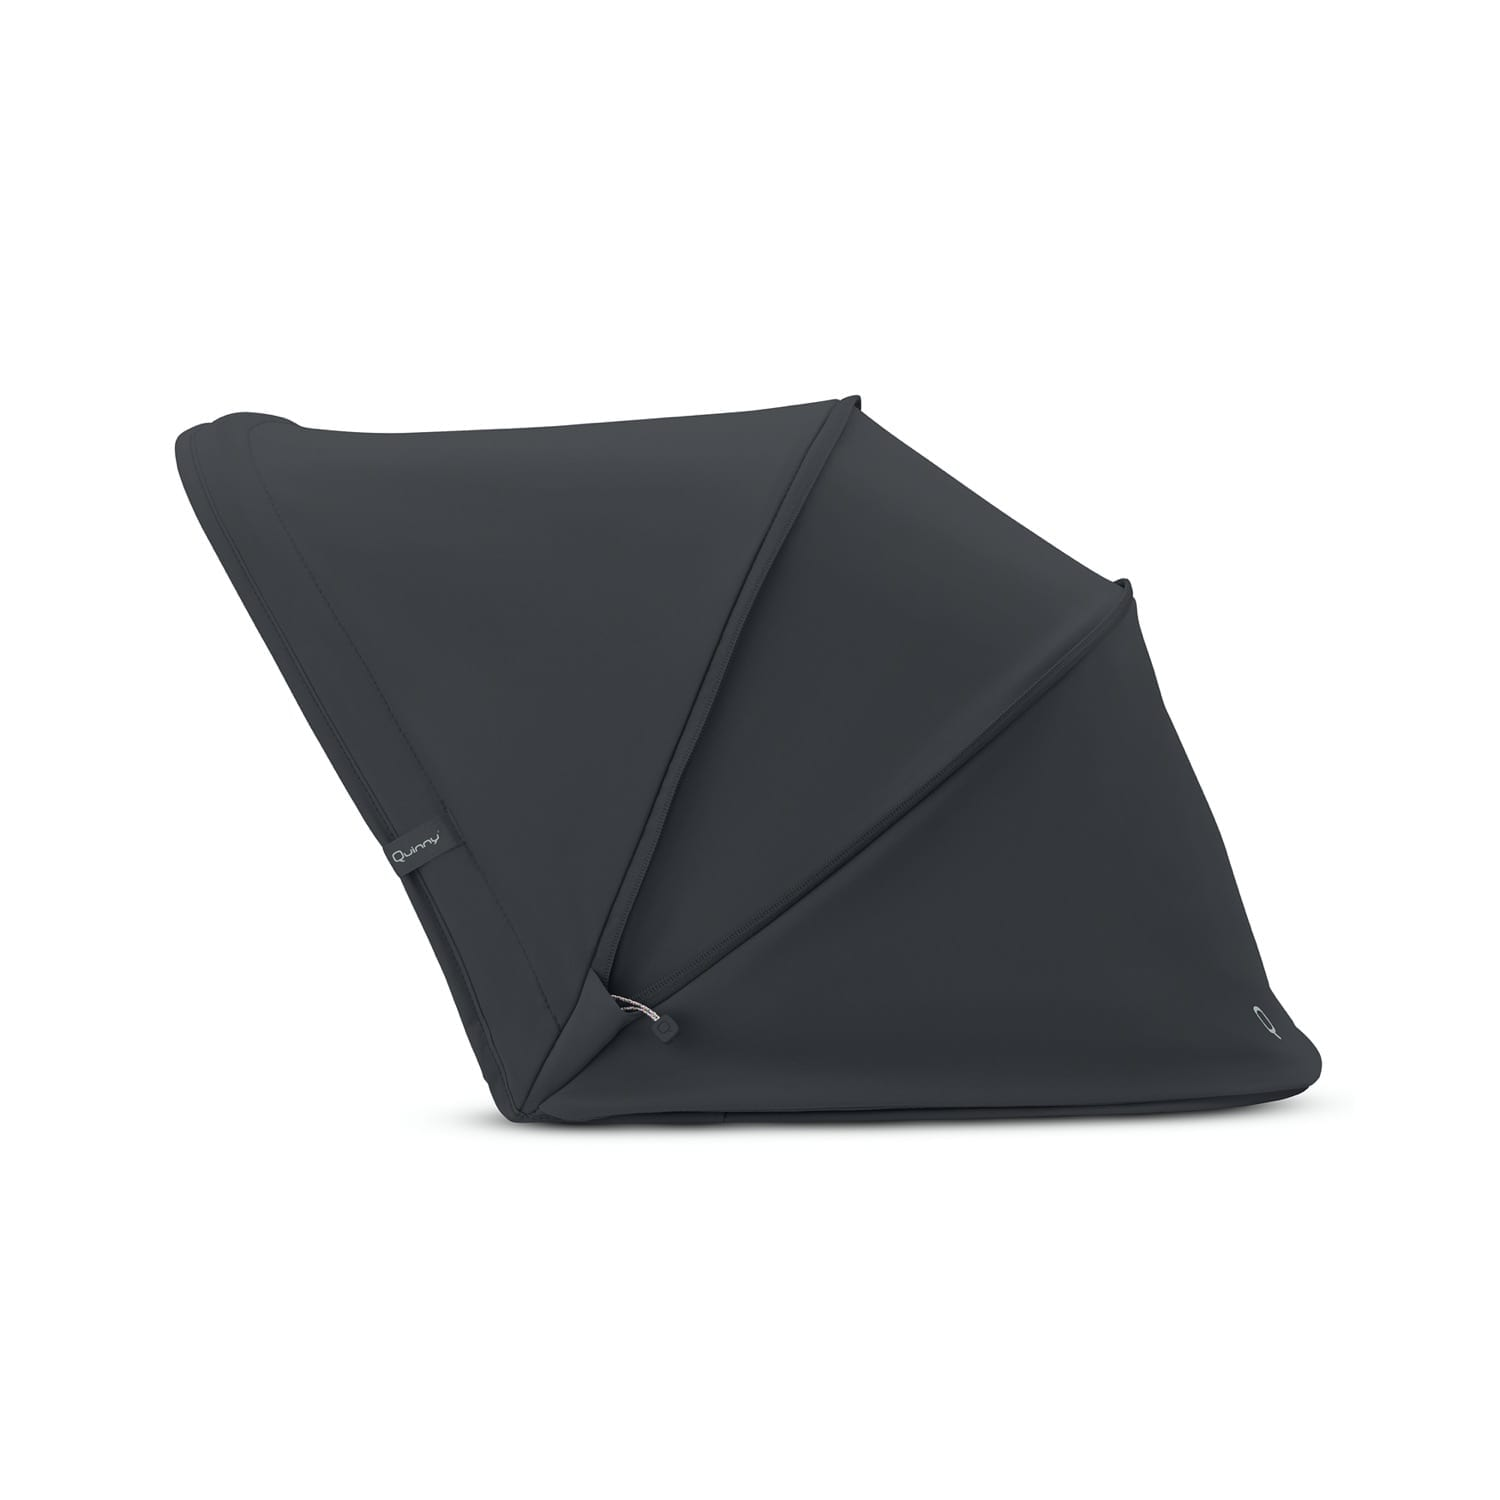 Quinny Hubb Sun Canopy in Black product image